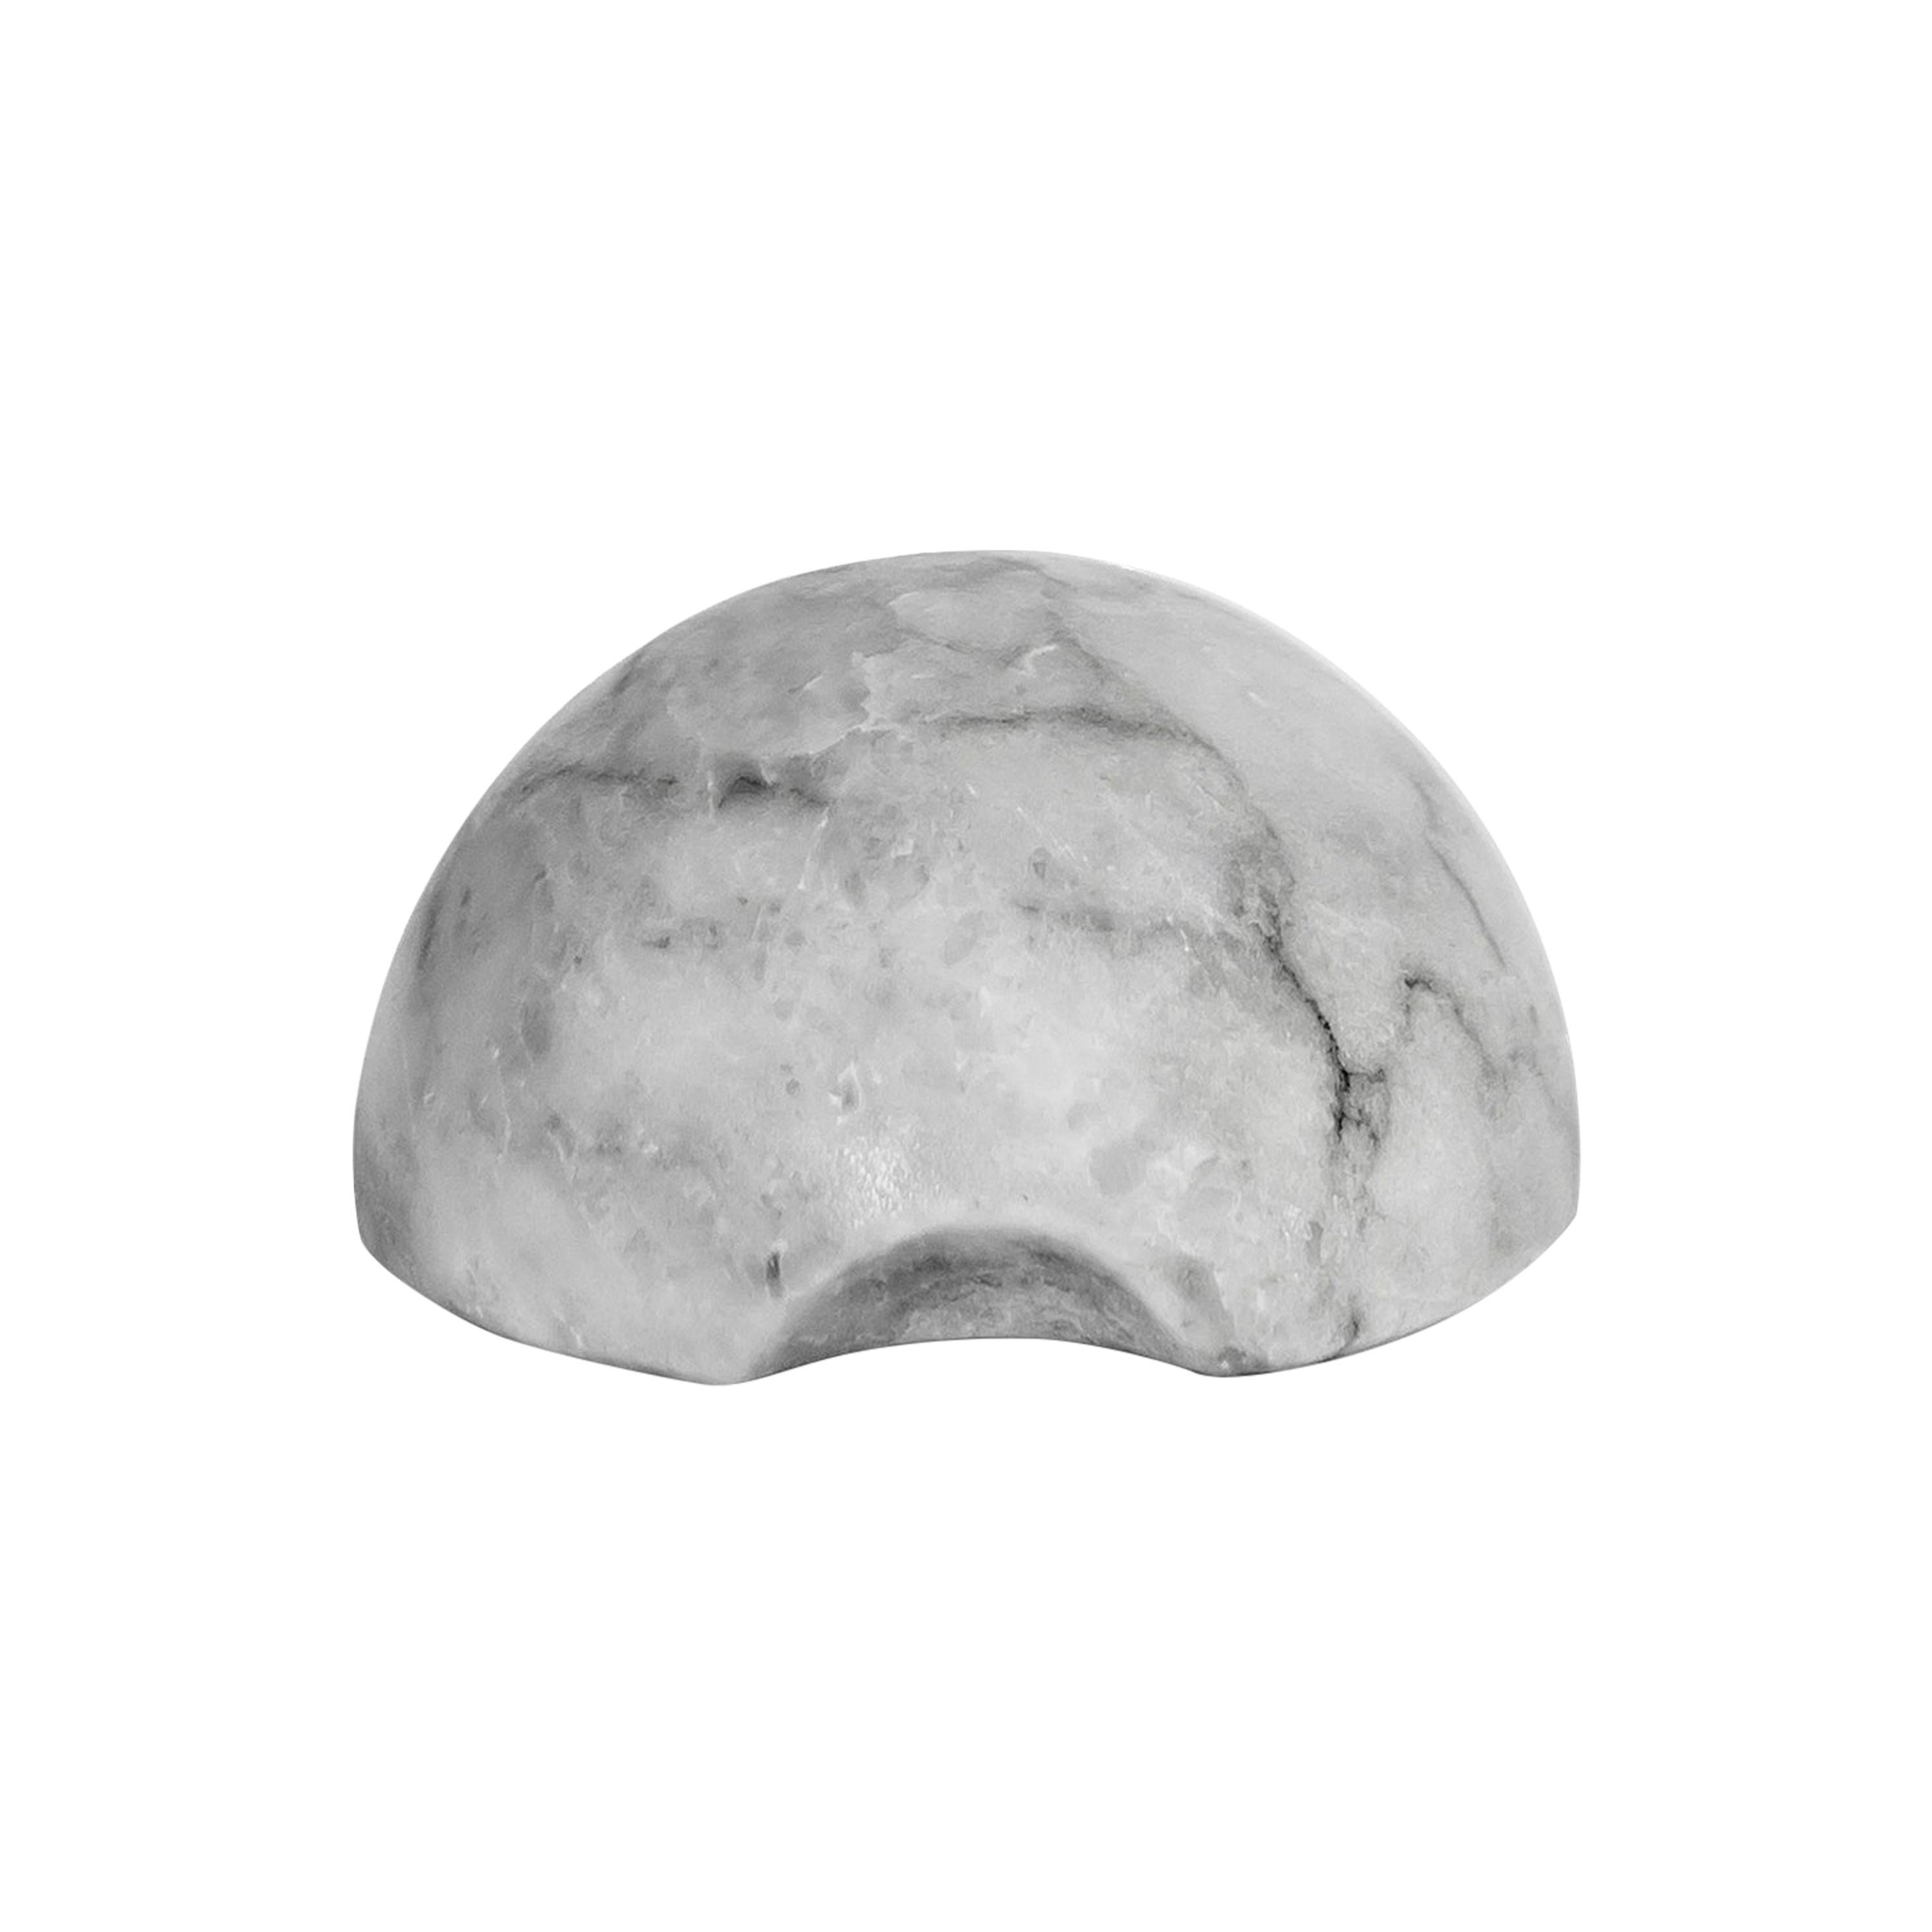 Paperweight in White Veneciano Marble